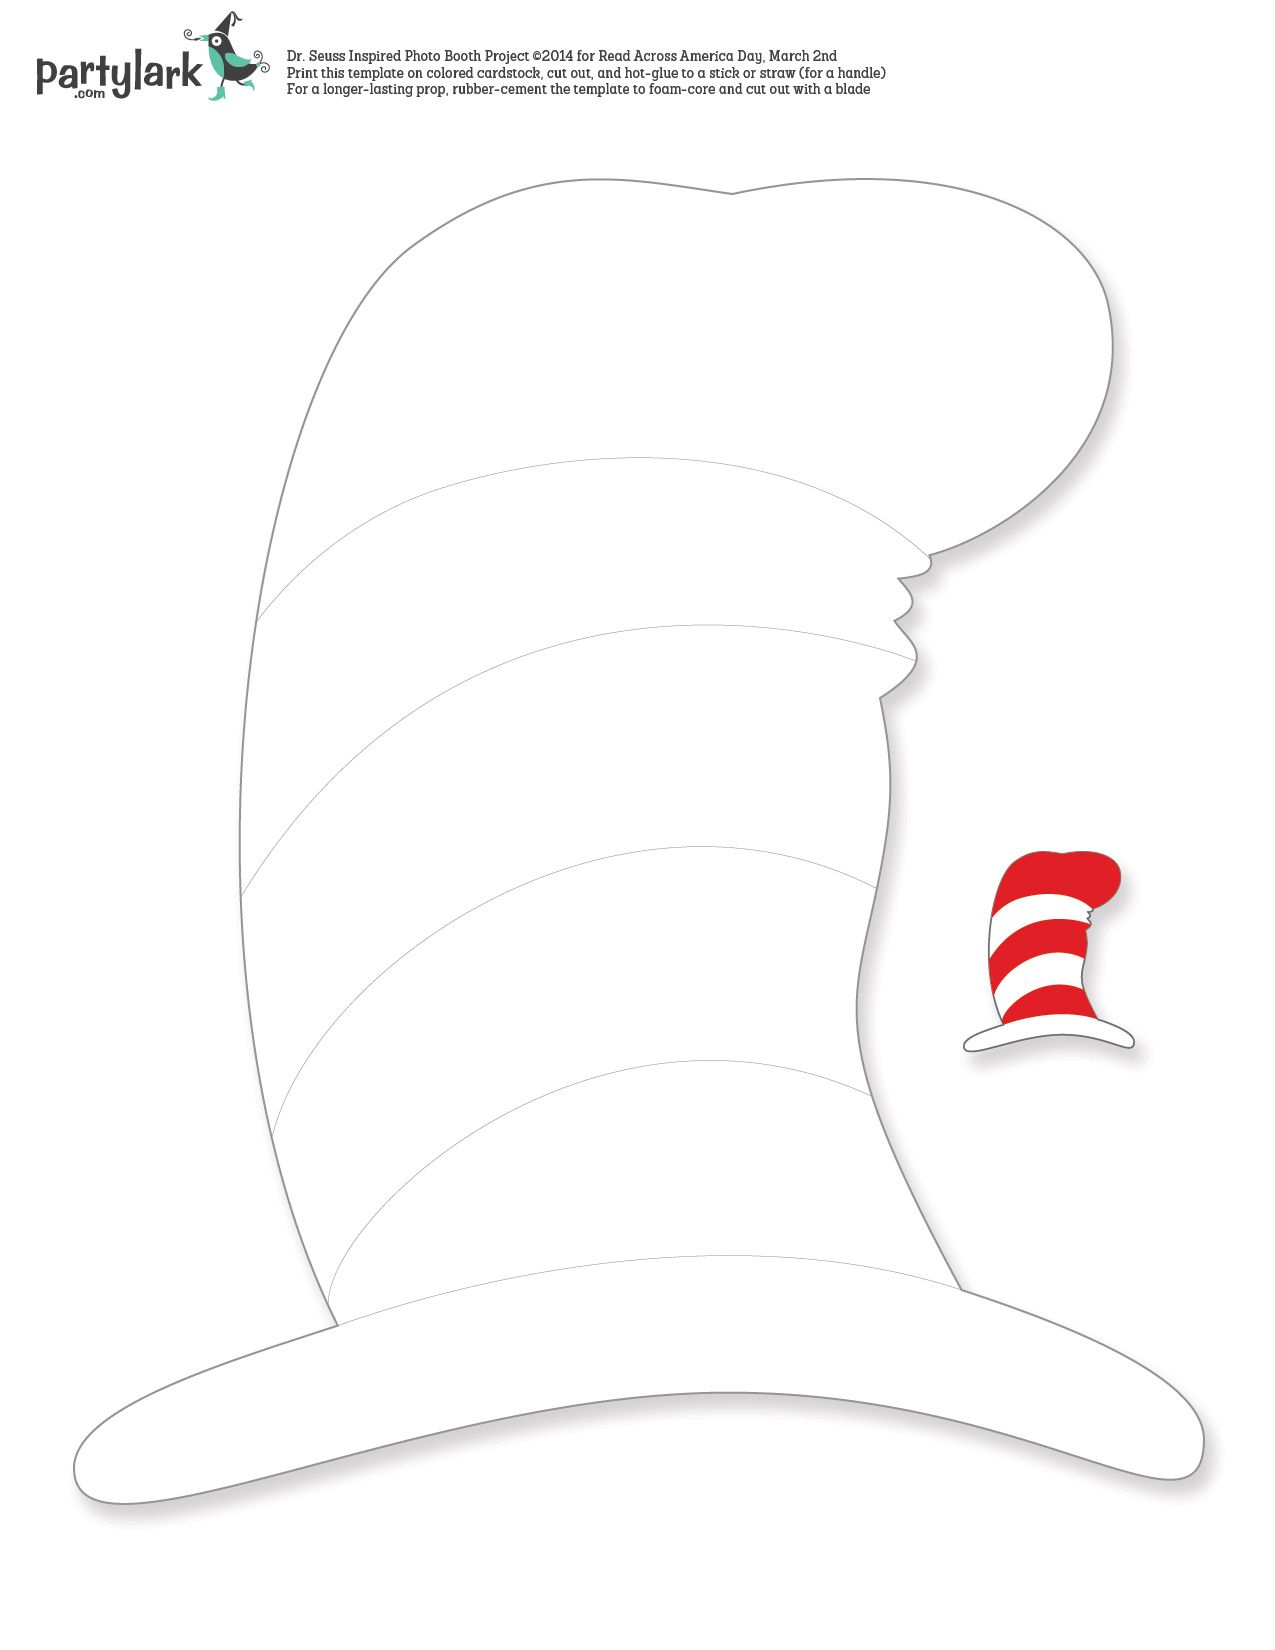 a seussical twist on photo booth props just in time for dr seuss